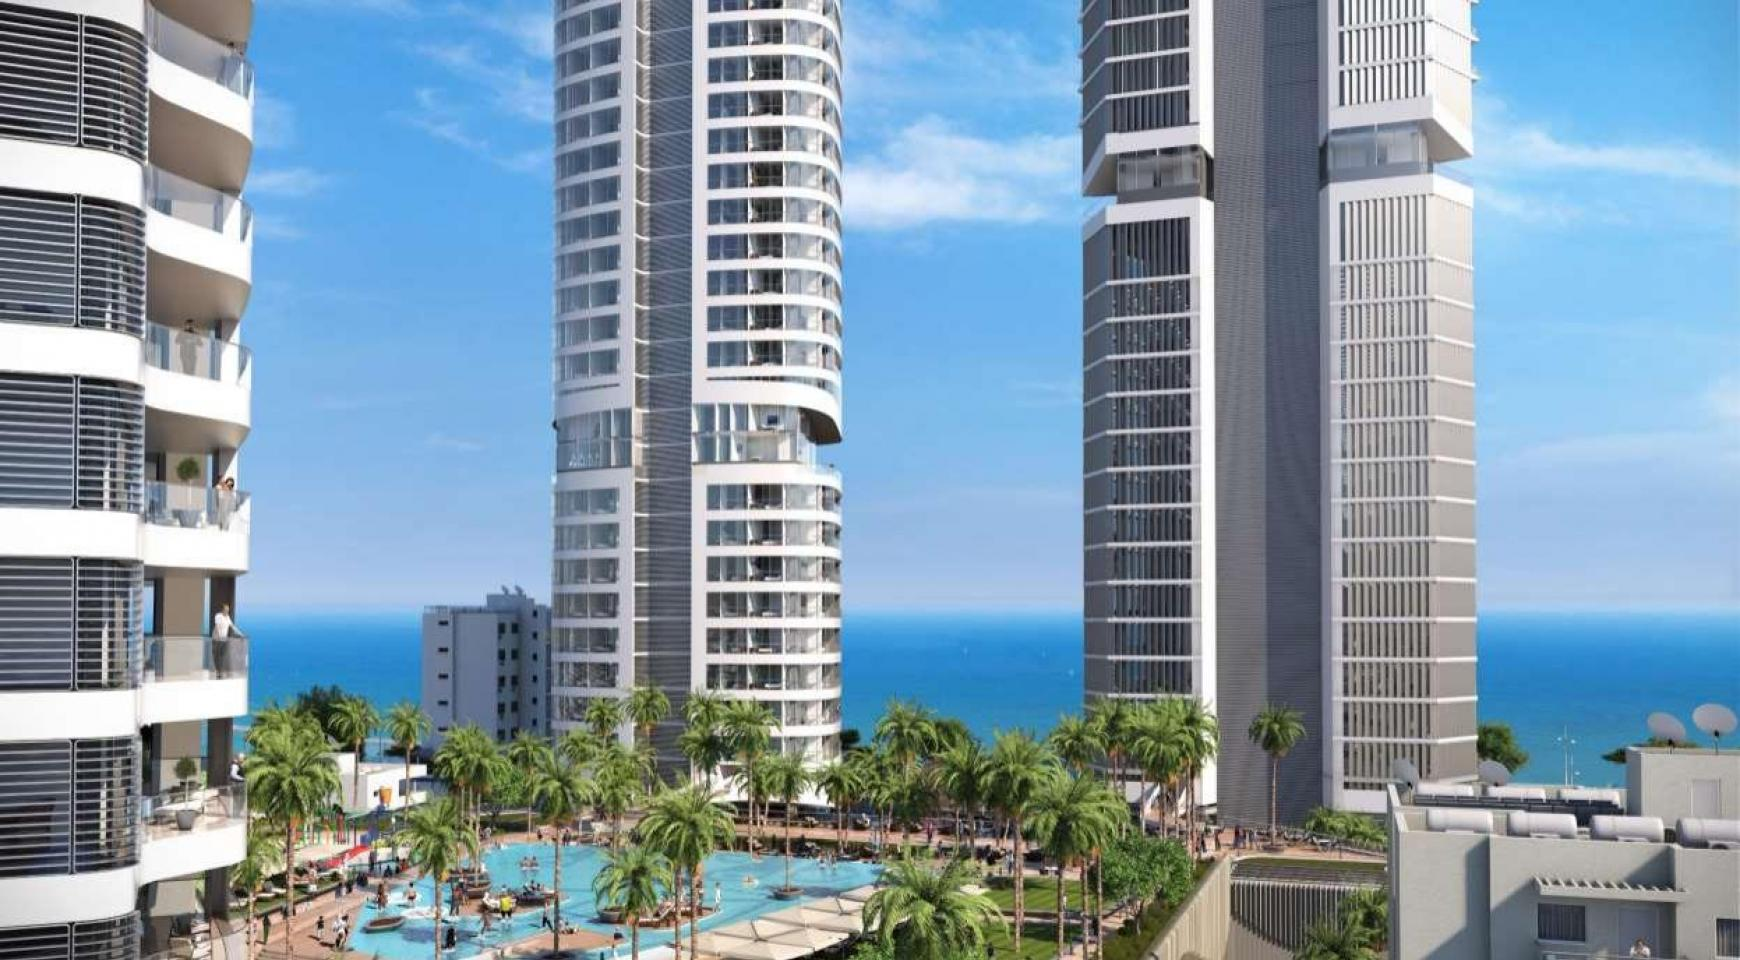 Luxury 3 Bedroom Apartment in a New Project by the Sea in the City Centre - 1